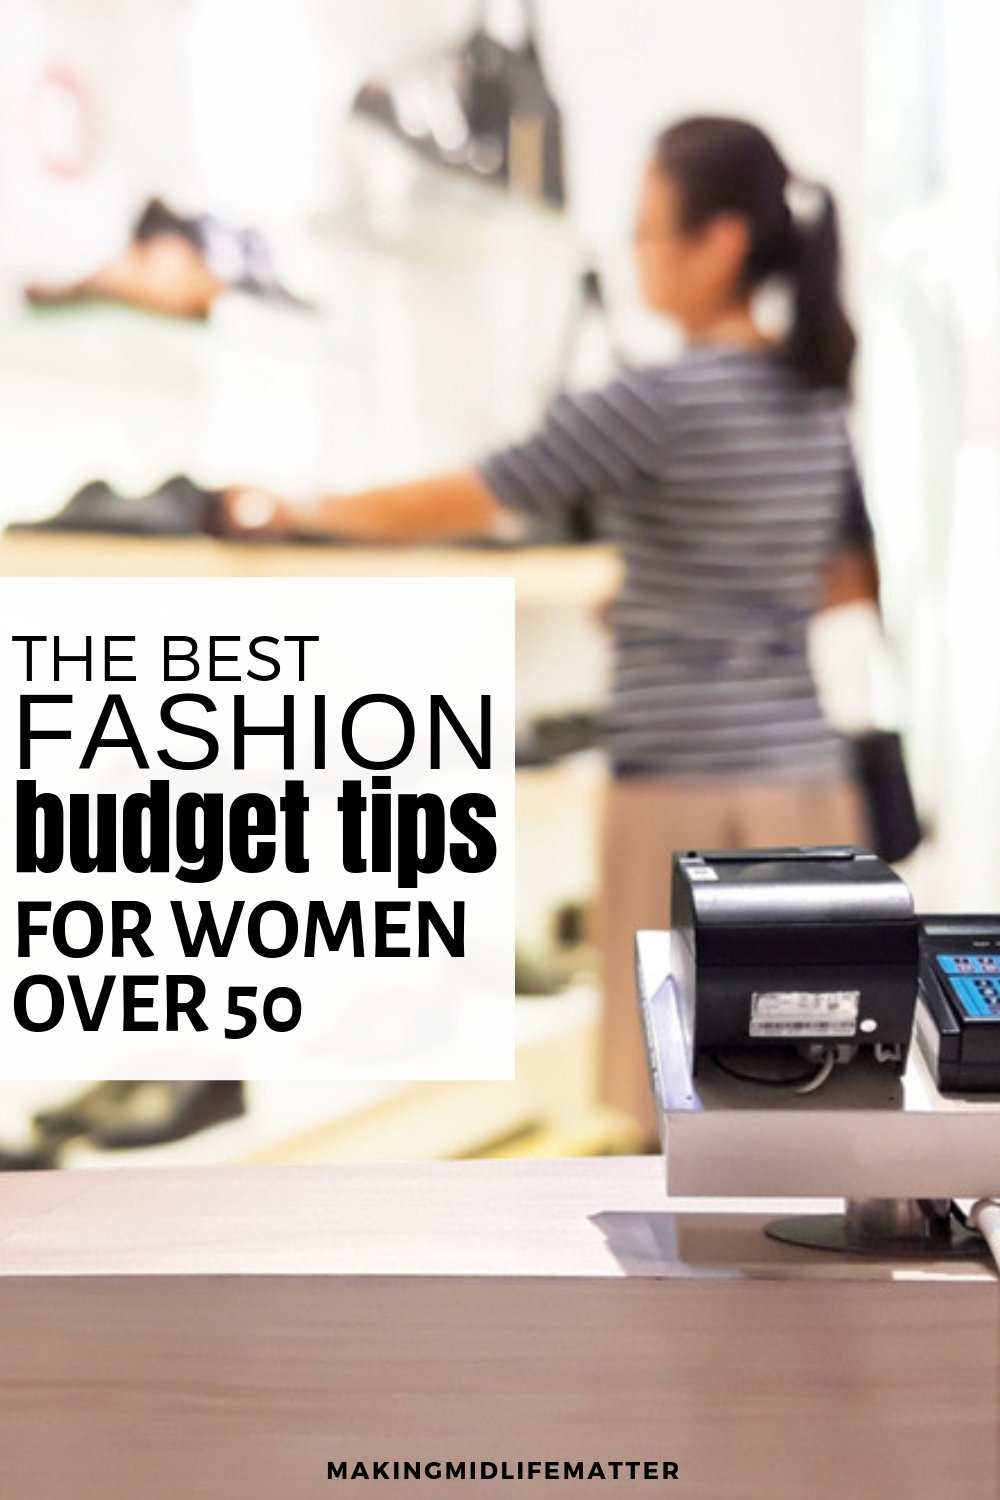 Just because we are older, doesn't mean we don't want to feel stylish. After all, looking good makes us feel good too. With simple planning and an awareness of what suits you best, the following fashion budget tips for women over 50 will have you looking great and spending less like a professional shopper. #budget #moneysaving #fashiontips